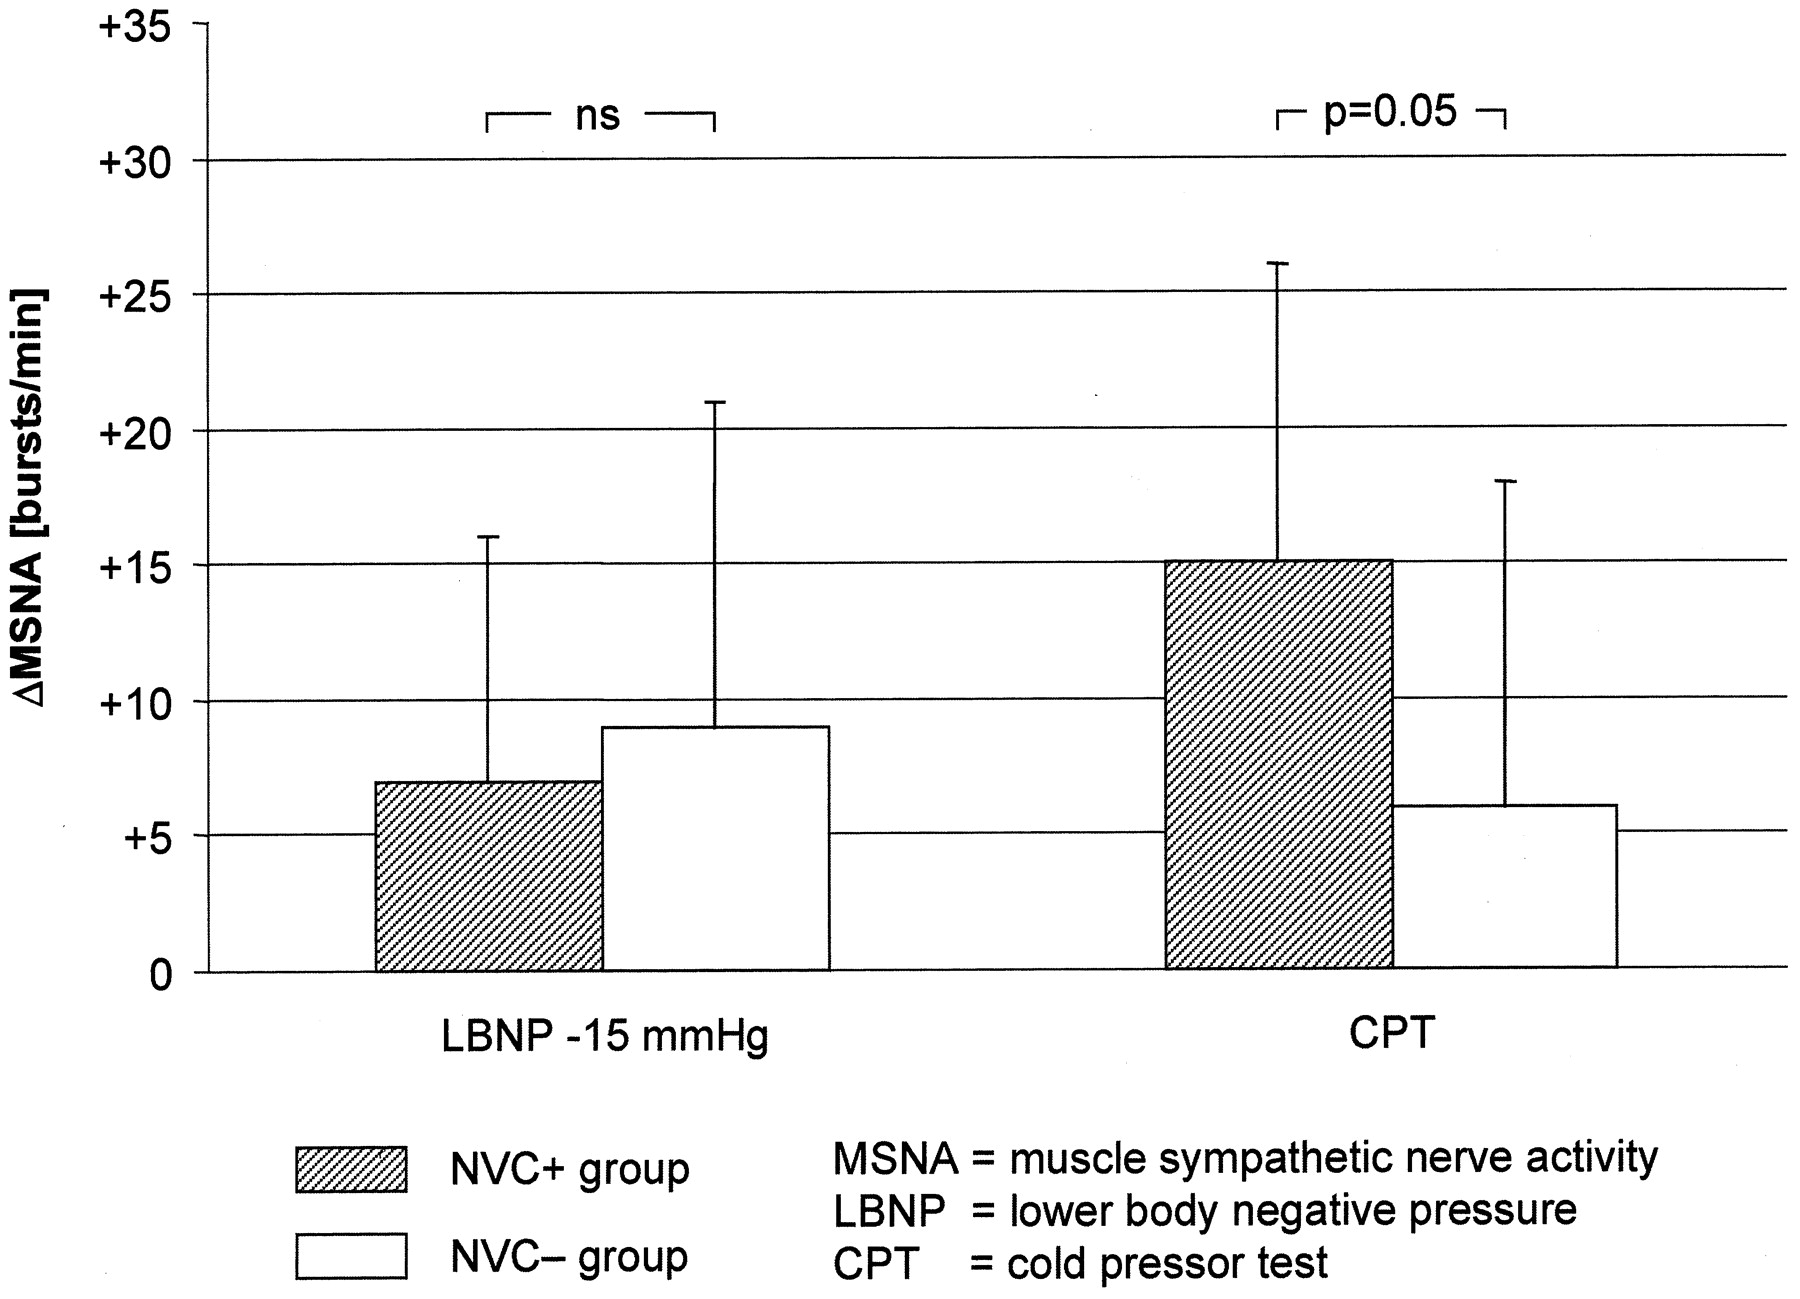 Hypertension in Patients with Neurovascular Compression Is